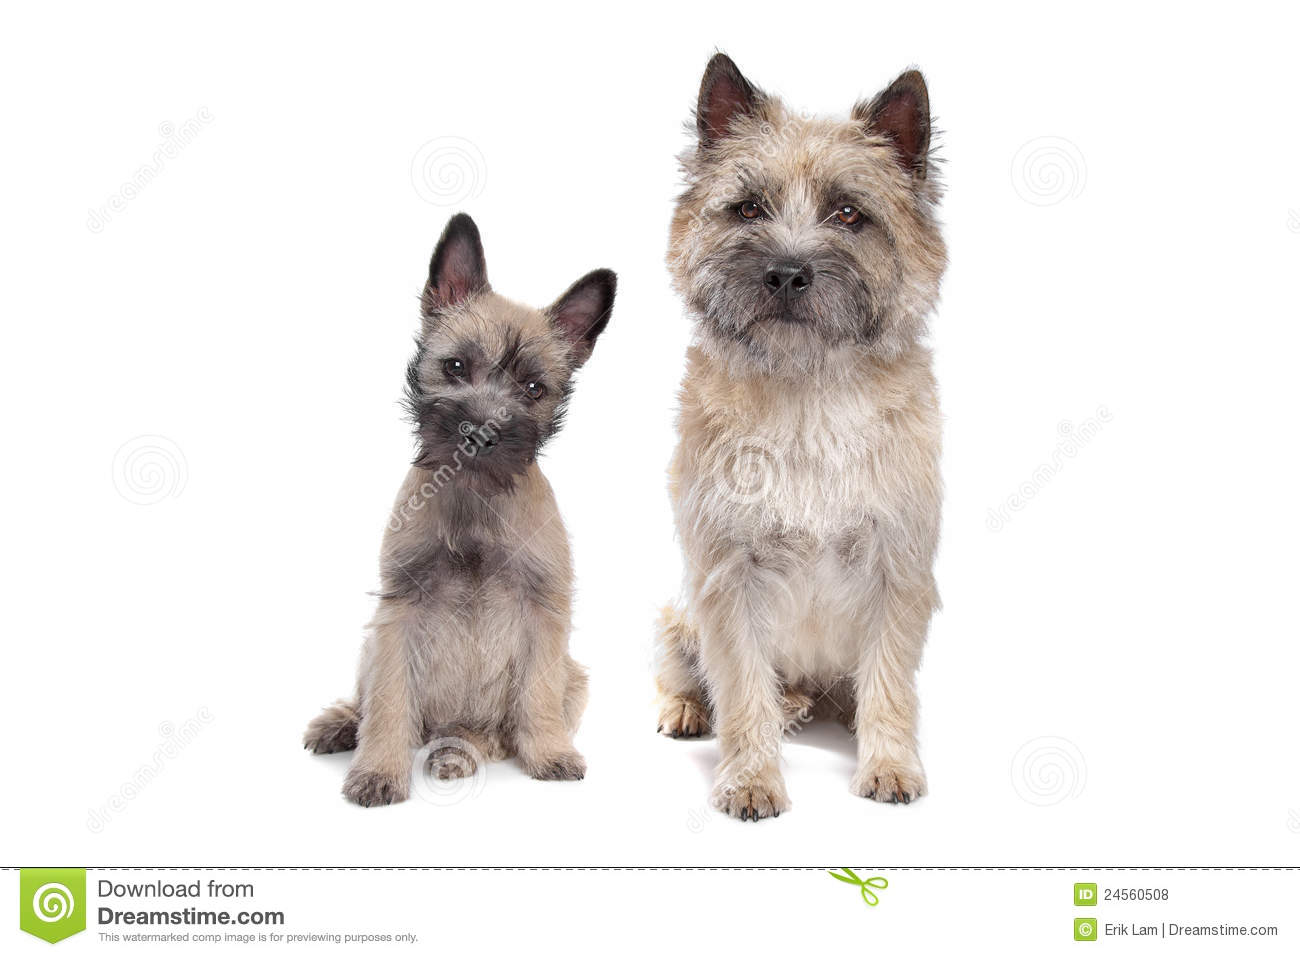 White Cairn Terrier Puppy Puppy and adult cairn Terrier